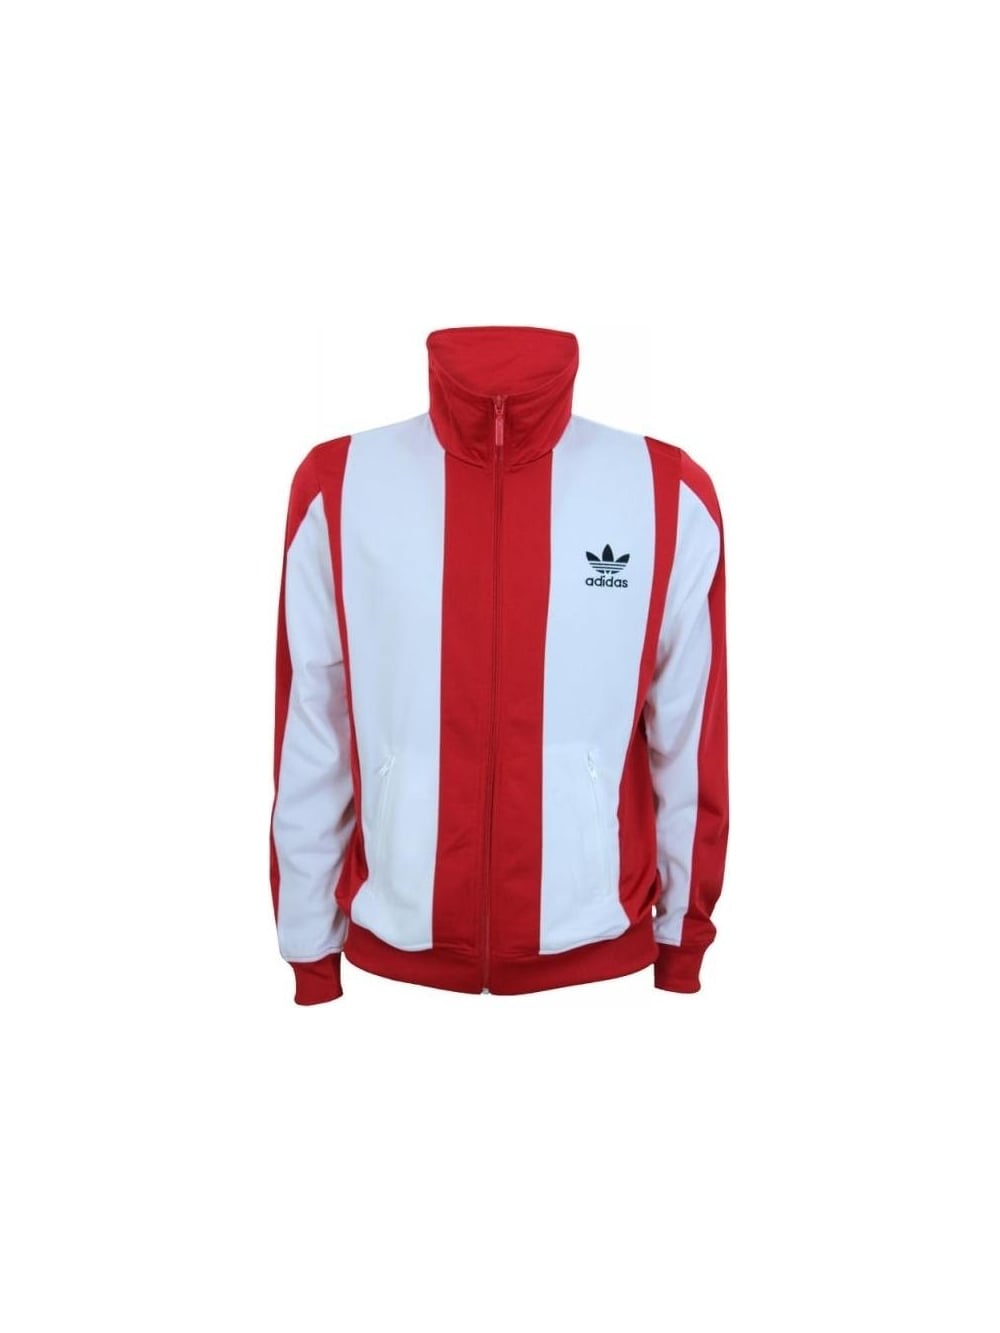 4874f391b4e0 Adidas Beckenbauer Track Top in White Red - Northern Threads